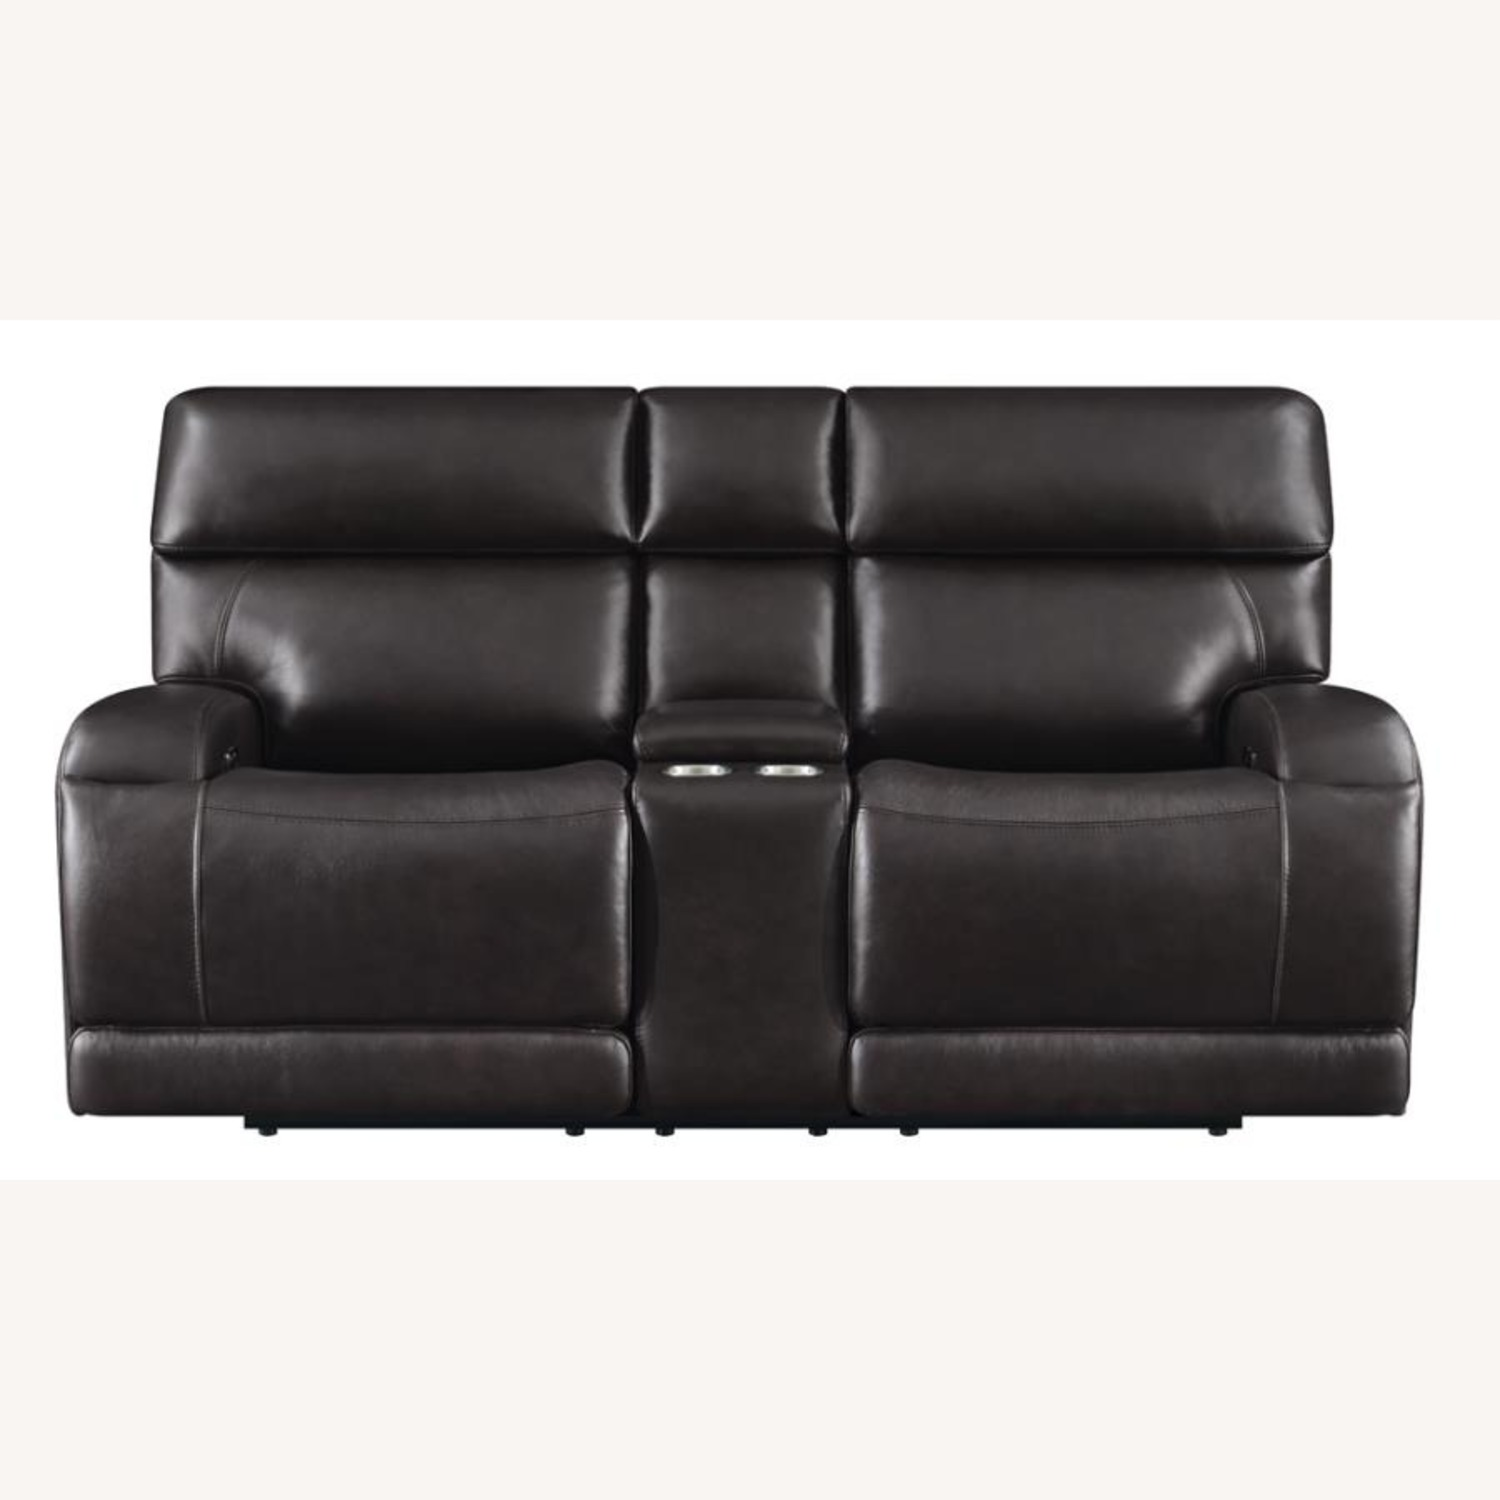 Power Loveseat W/ Console In Dark Brown Leather - image-2